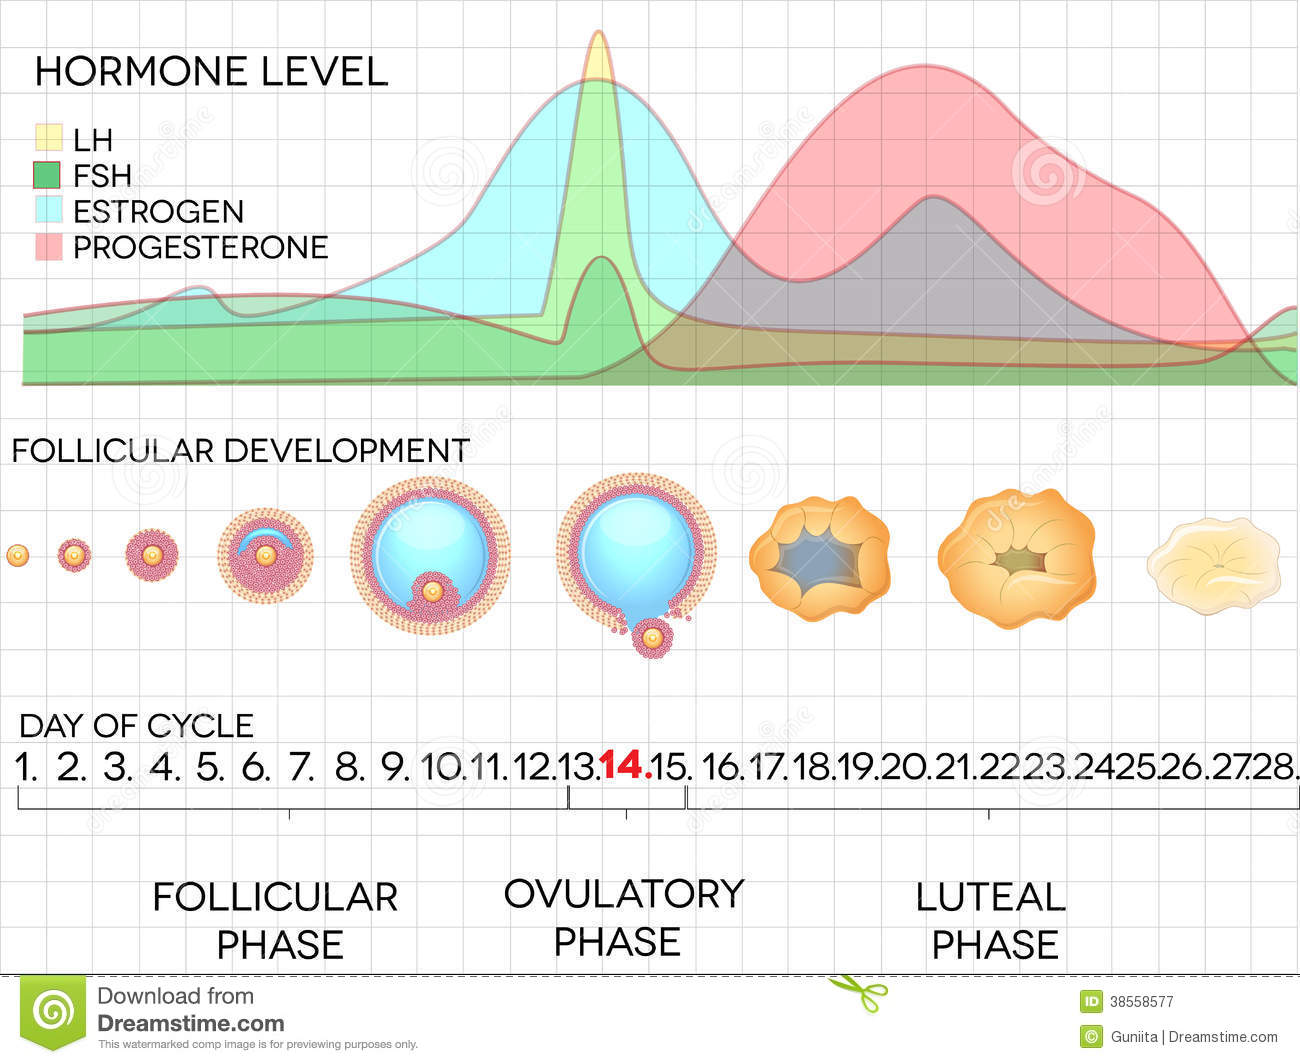 http://www.dreamstime.com/royalty-free-stock-photography-female-menstrual-cycle-ovulation-process-hormone-levels-detailed-medical-illustration-image38558577